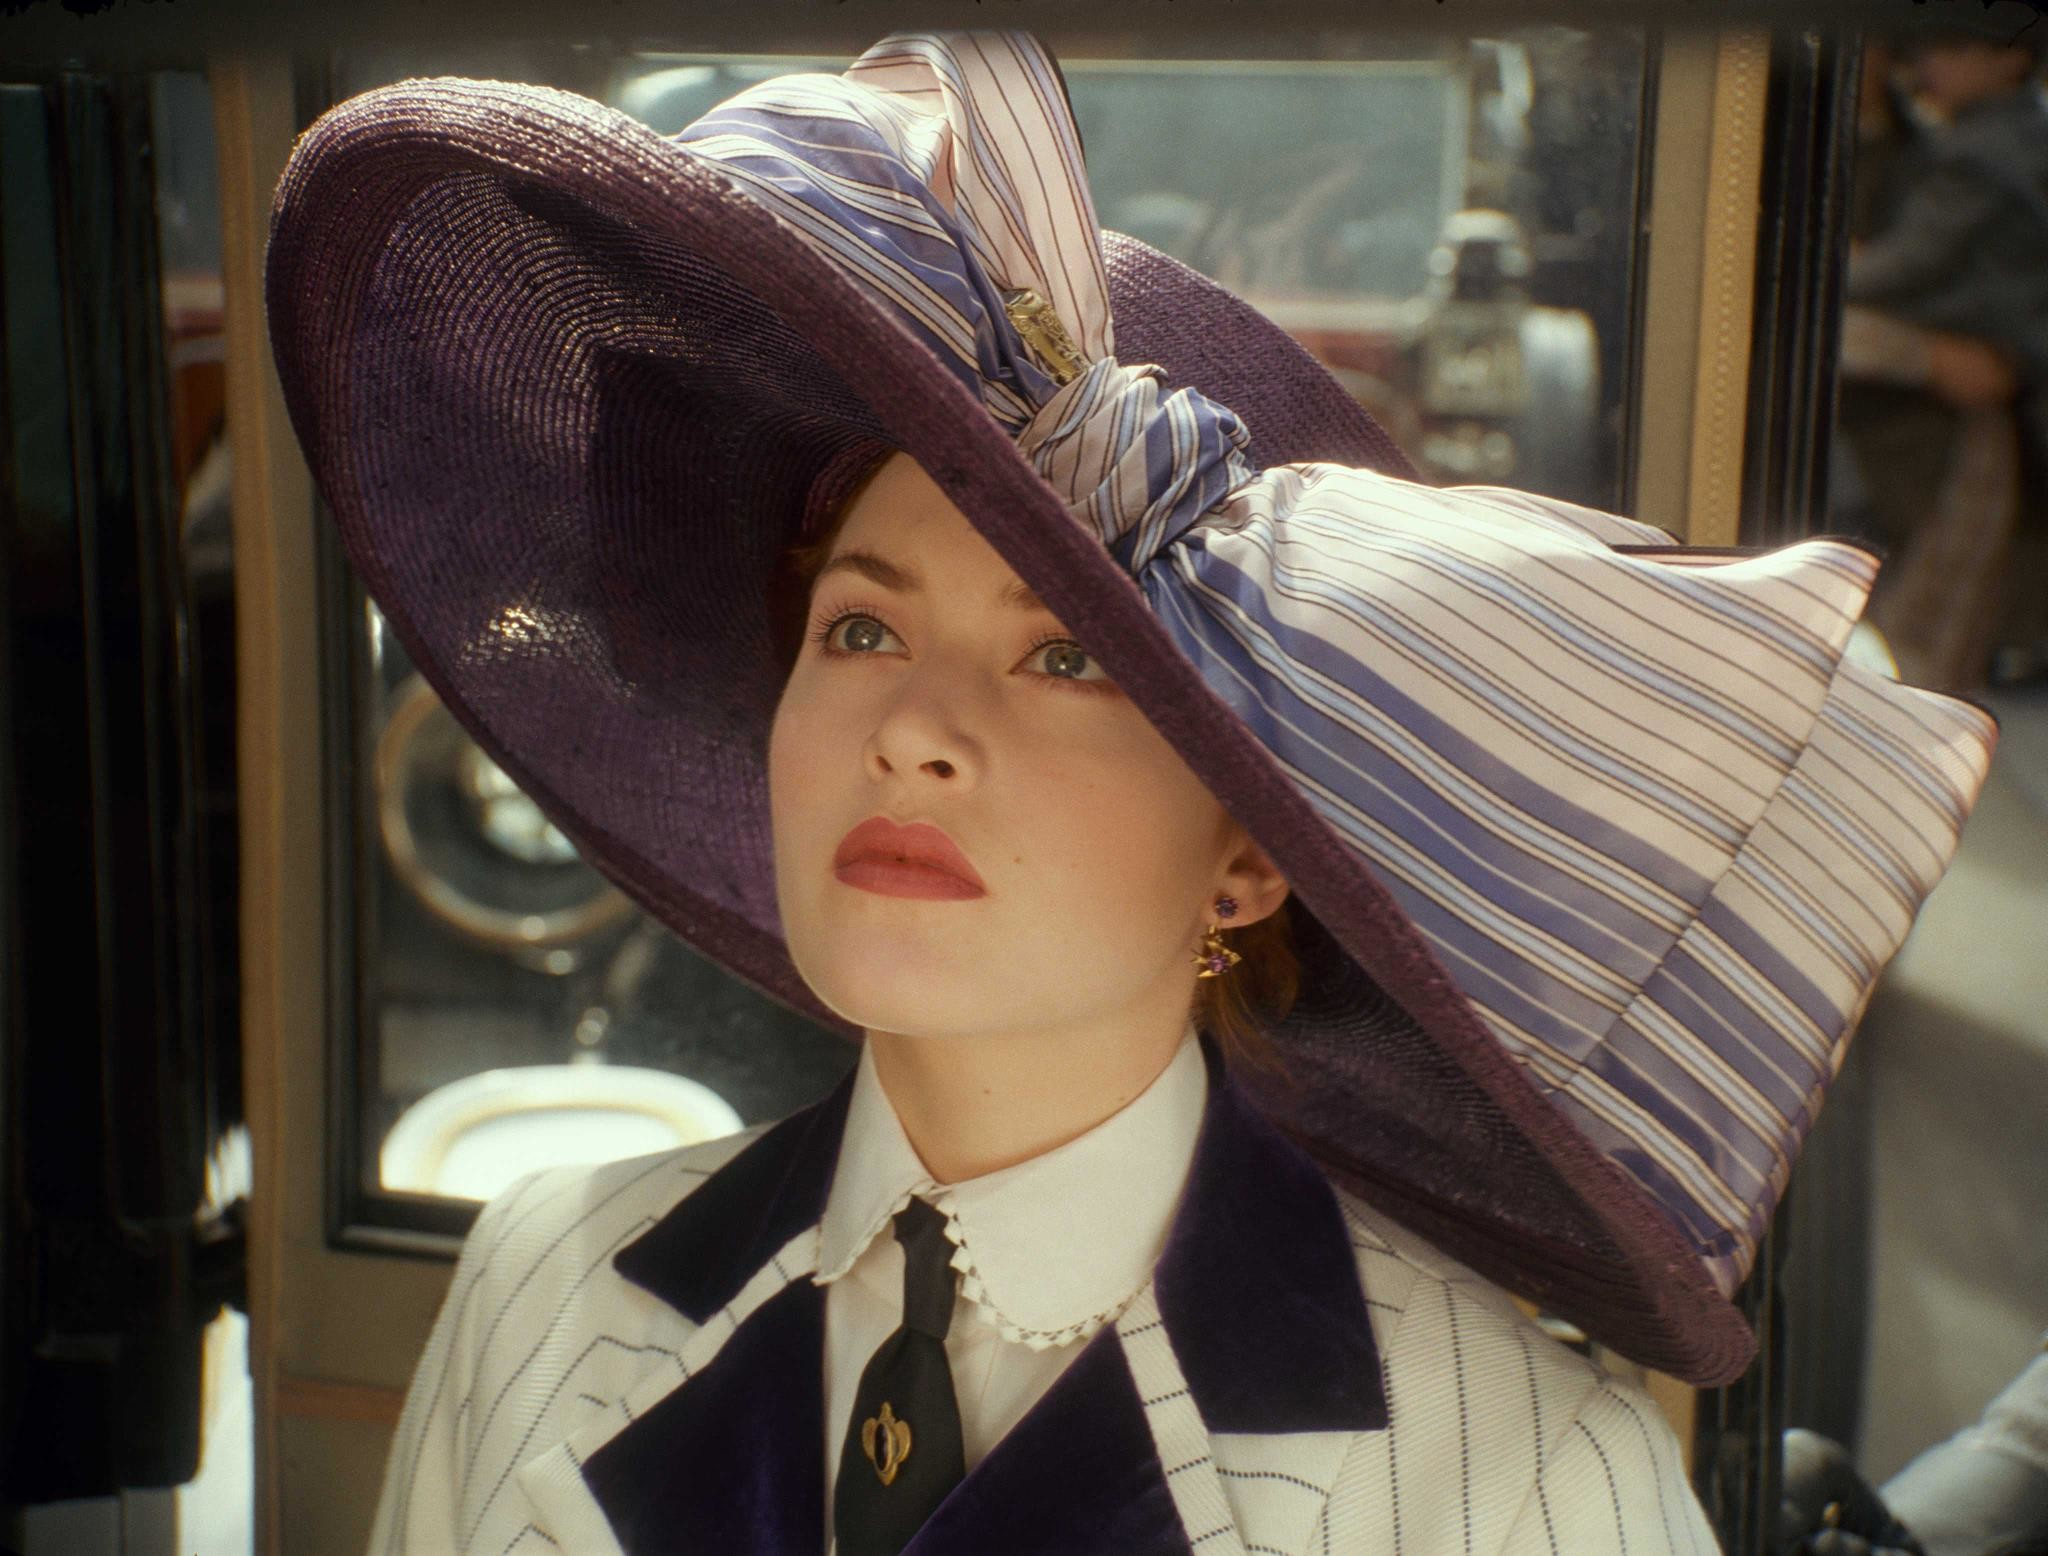 231 best titanic images on Pinterest   Titanic movie, Movie costumes and  Jack o'connell